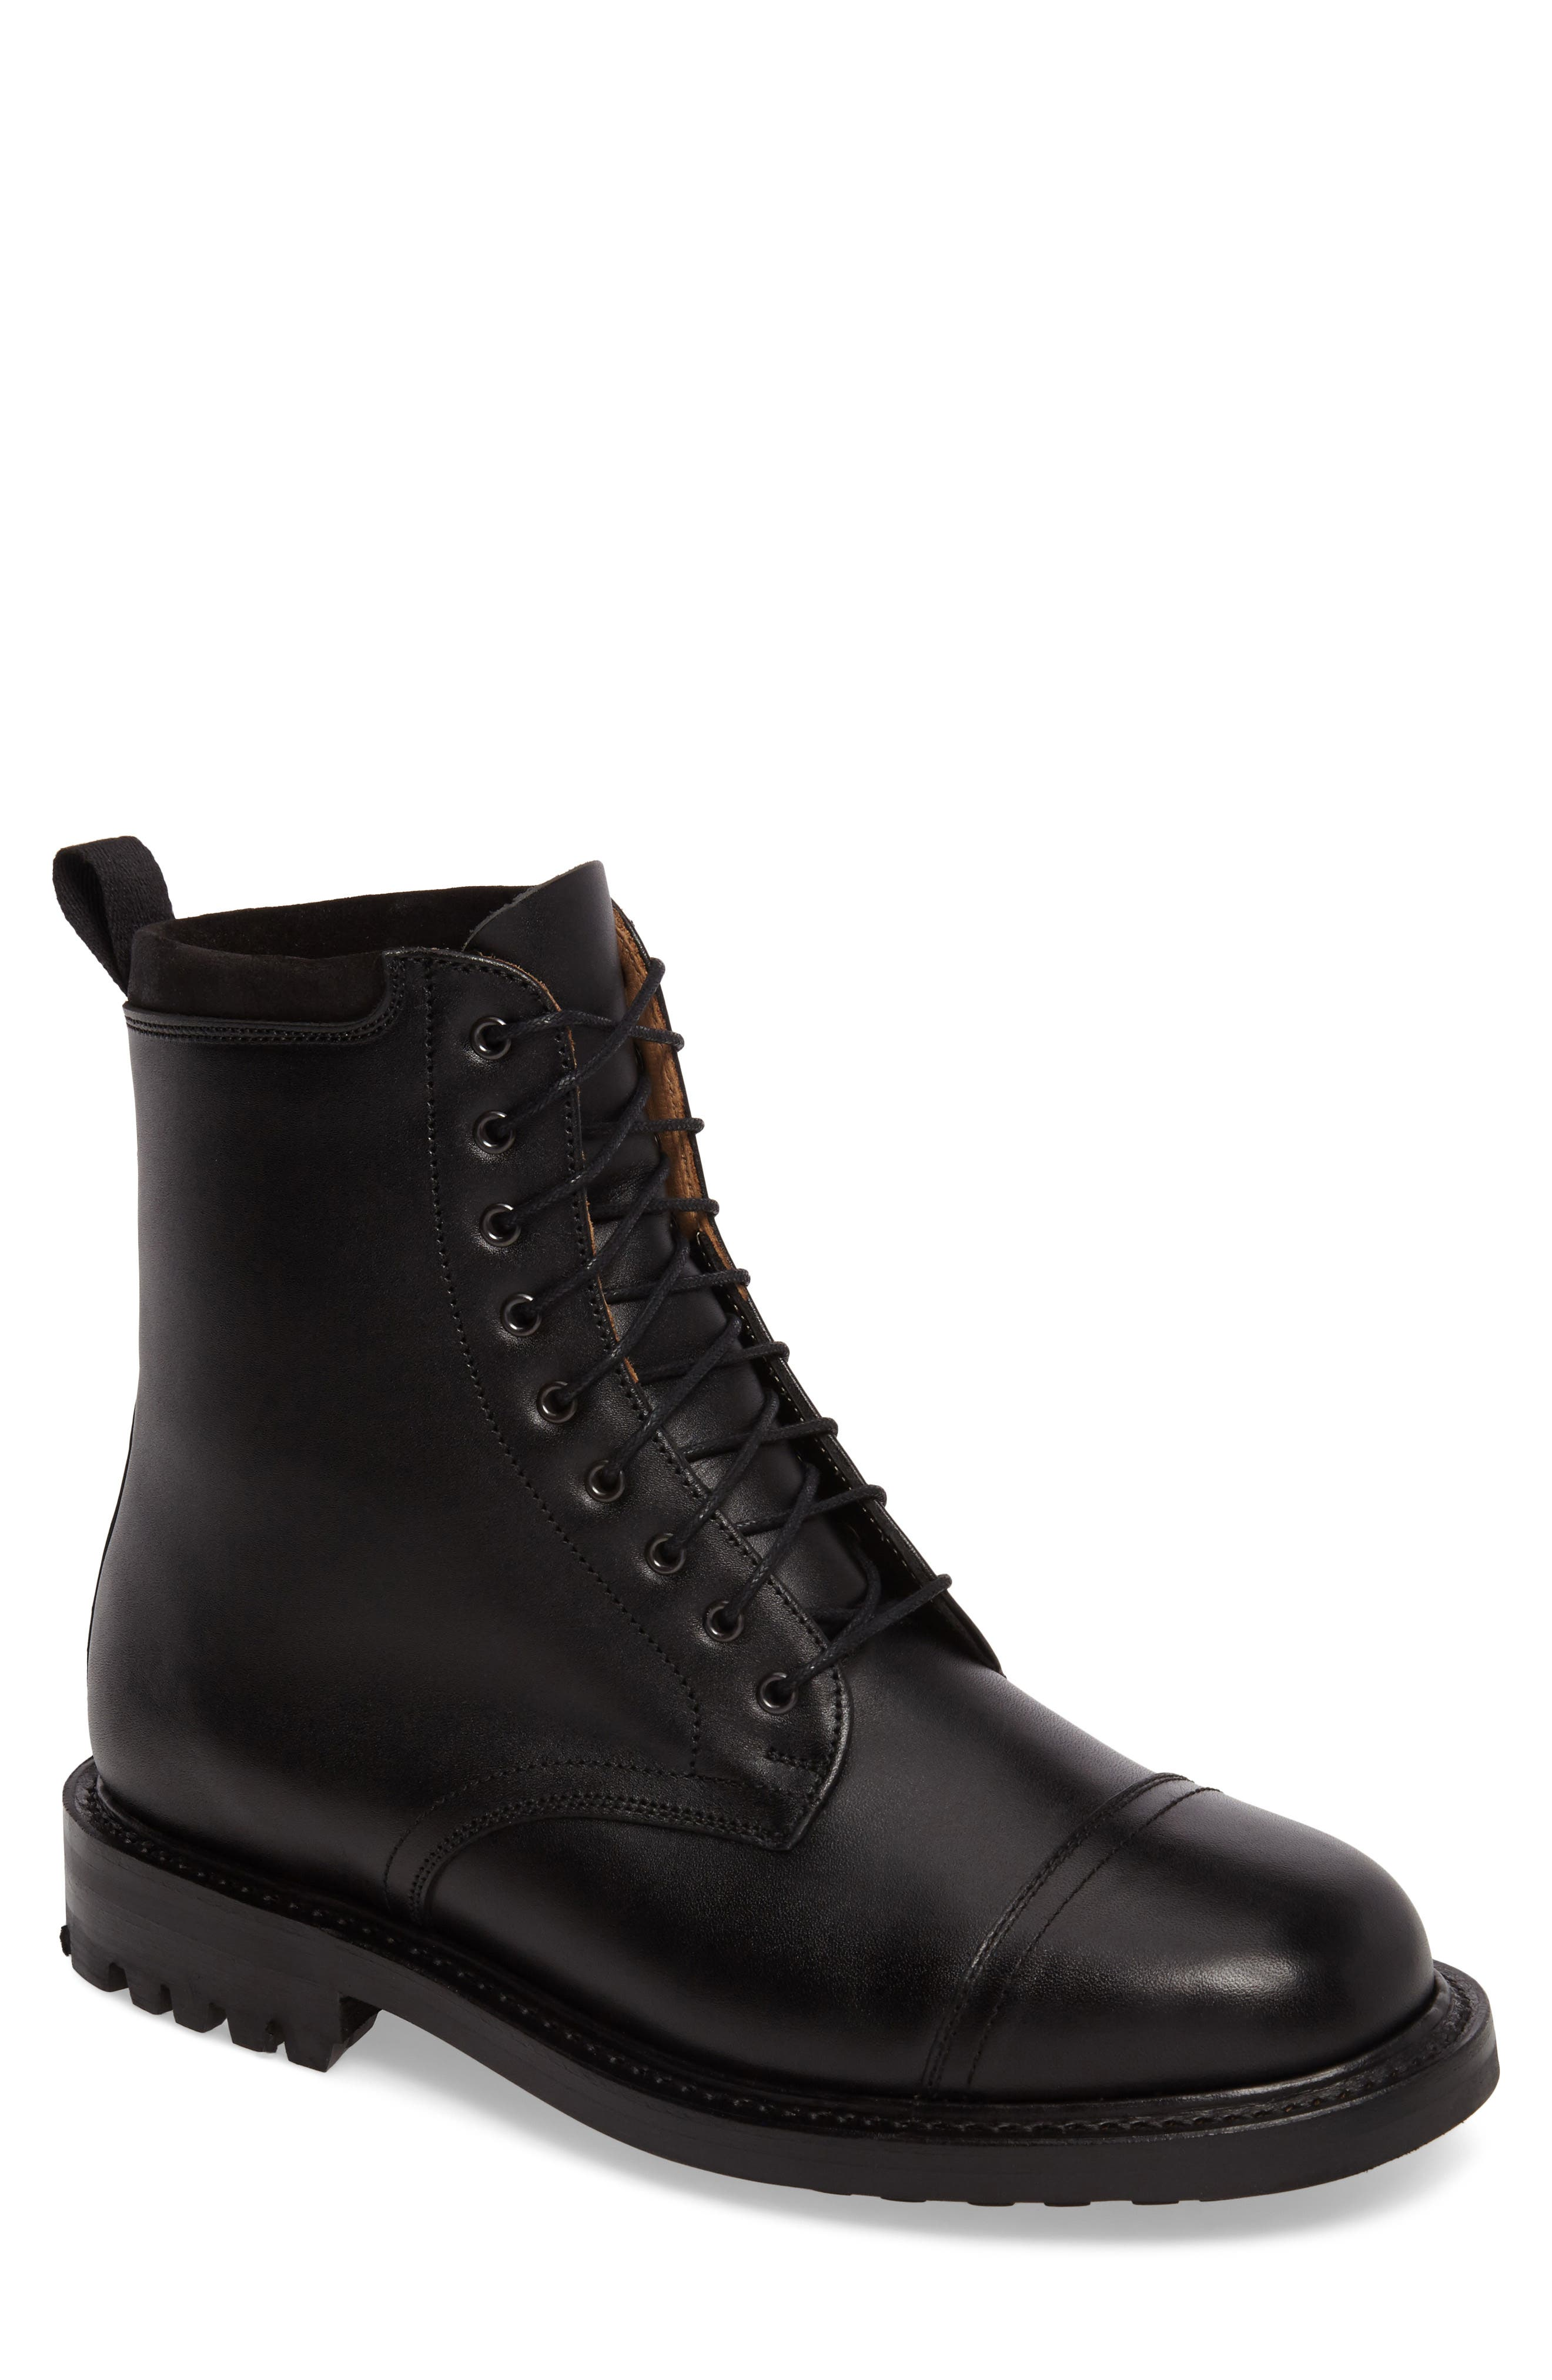 CLARKS<SUP>®</SUP>,                             Clarks Craftsmaster III Cap Toe Boot,                             Main thumbnail 1, color,                             BLACK LEATHER